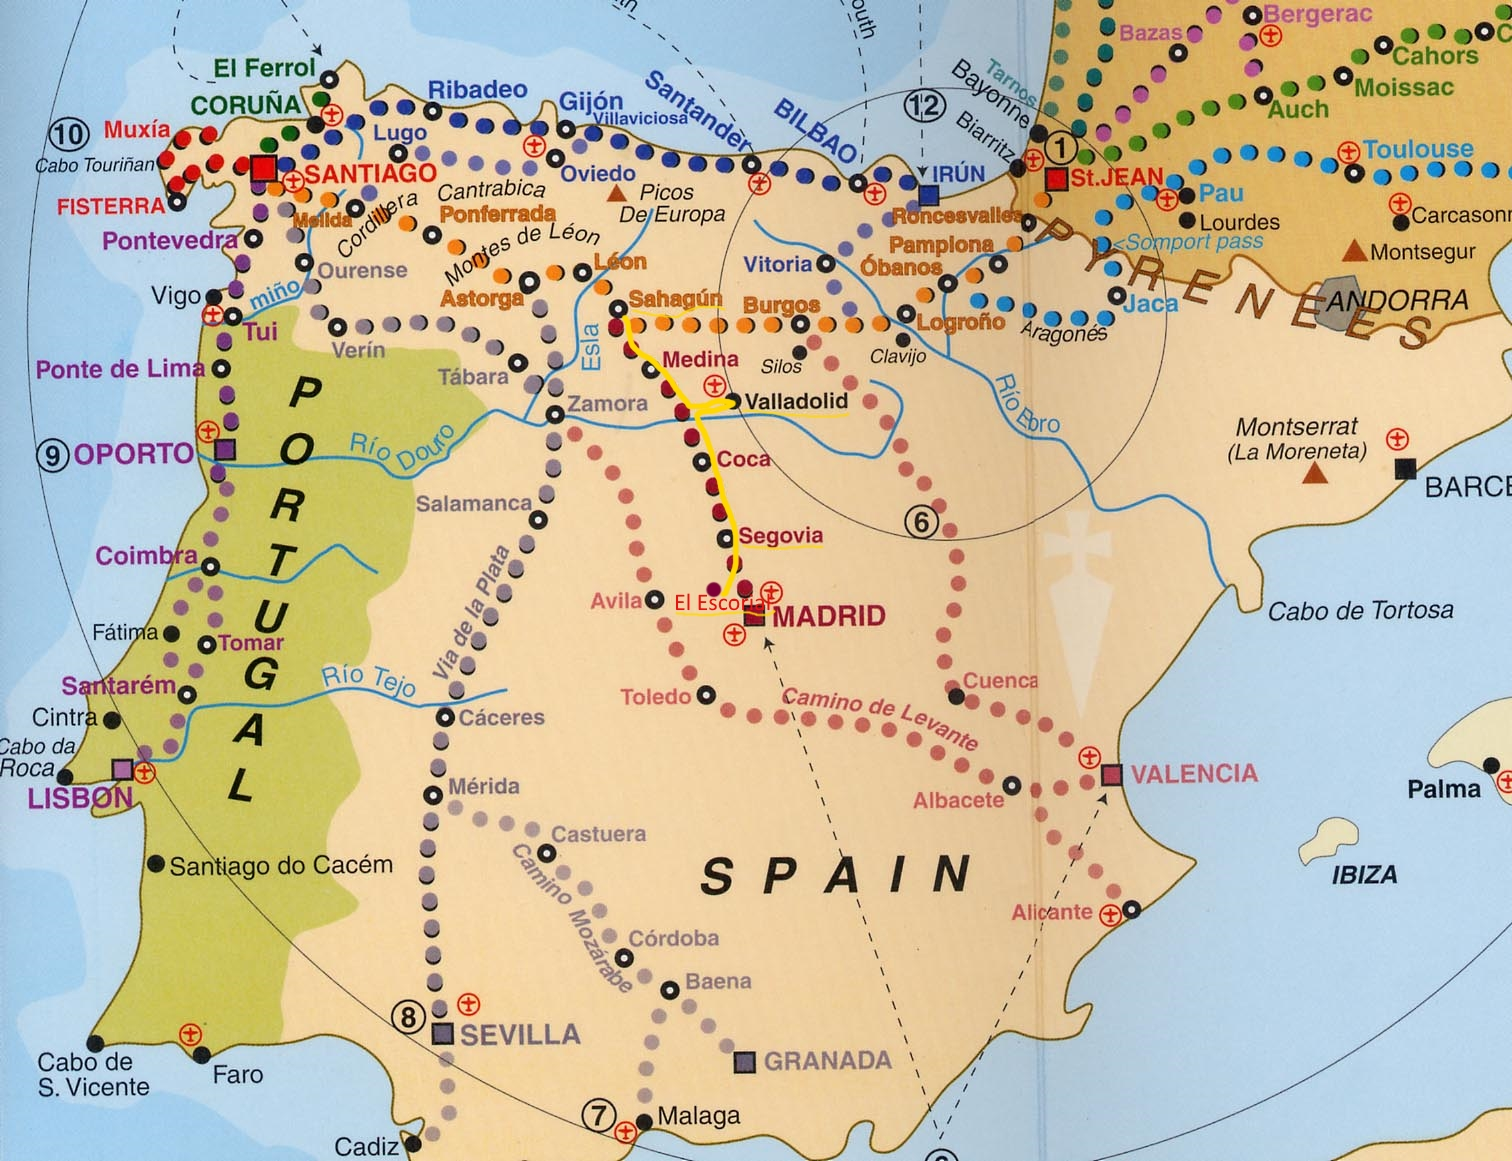 My Camino Route in 2016